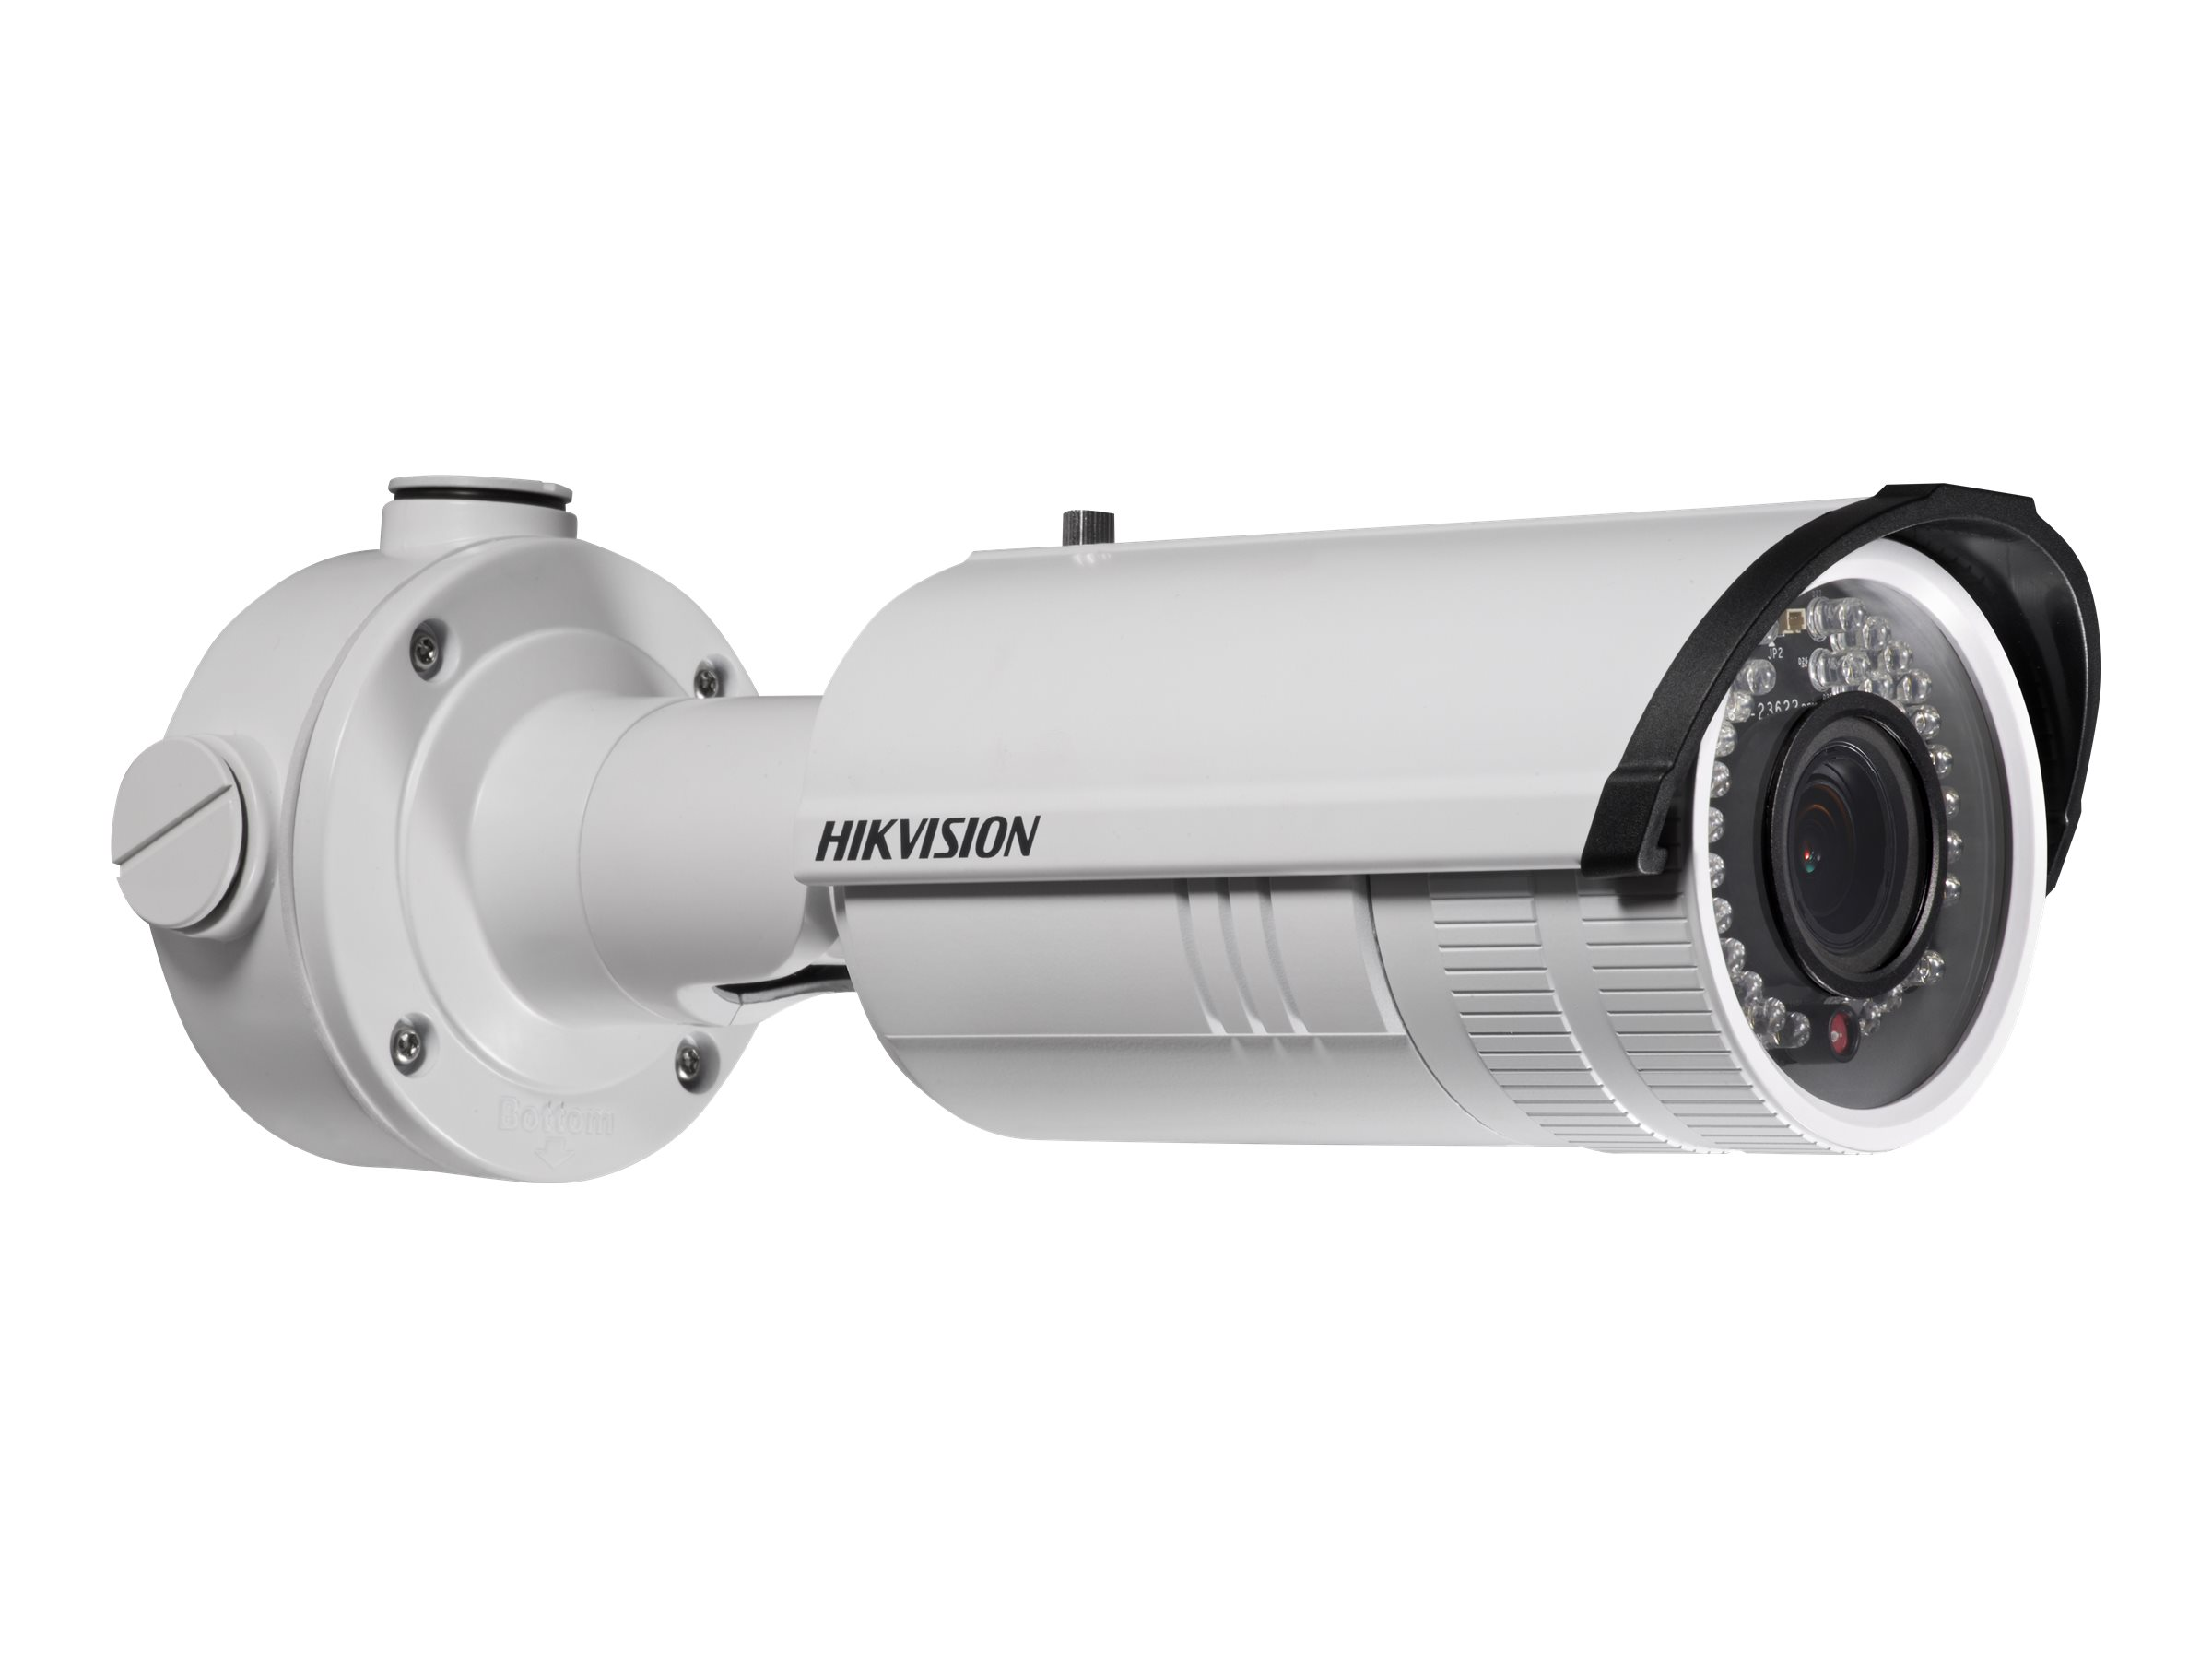 Hikvision DS-2CD2642FWD-IS - network surveillance camera